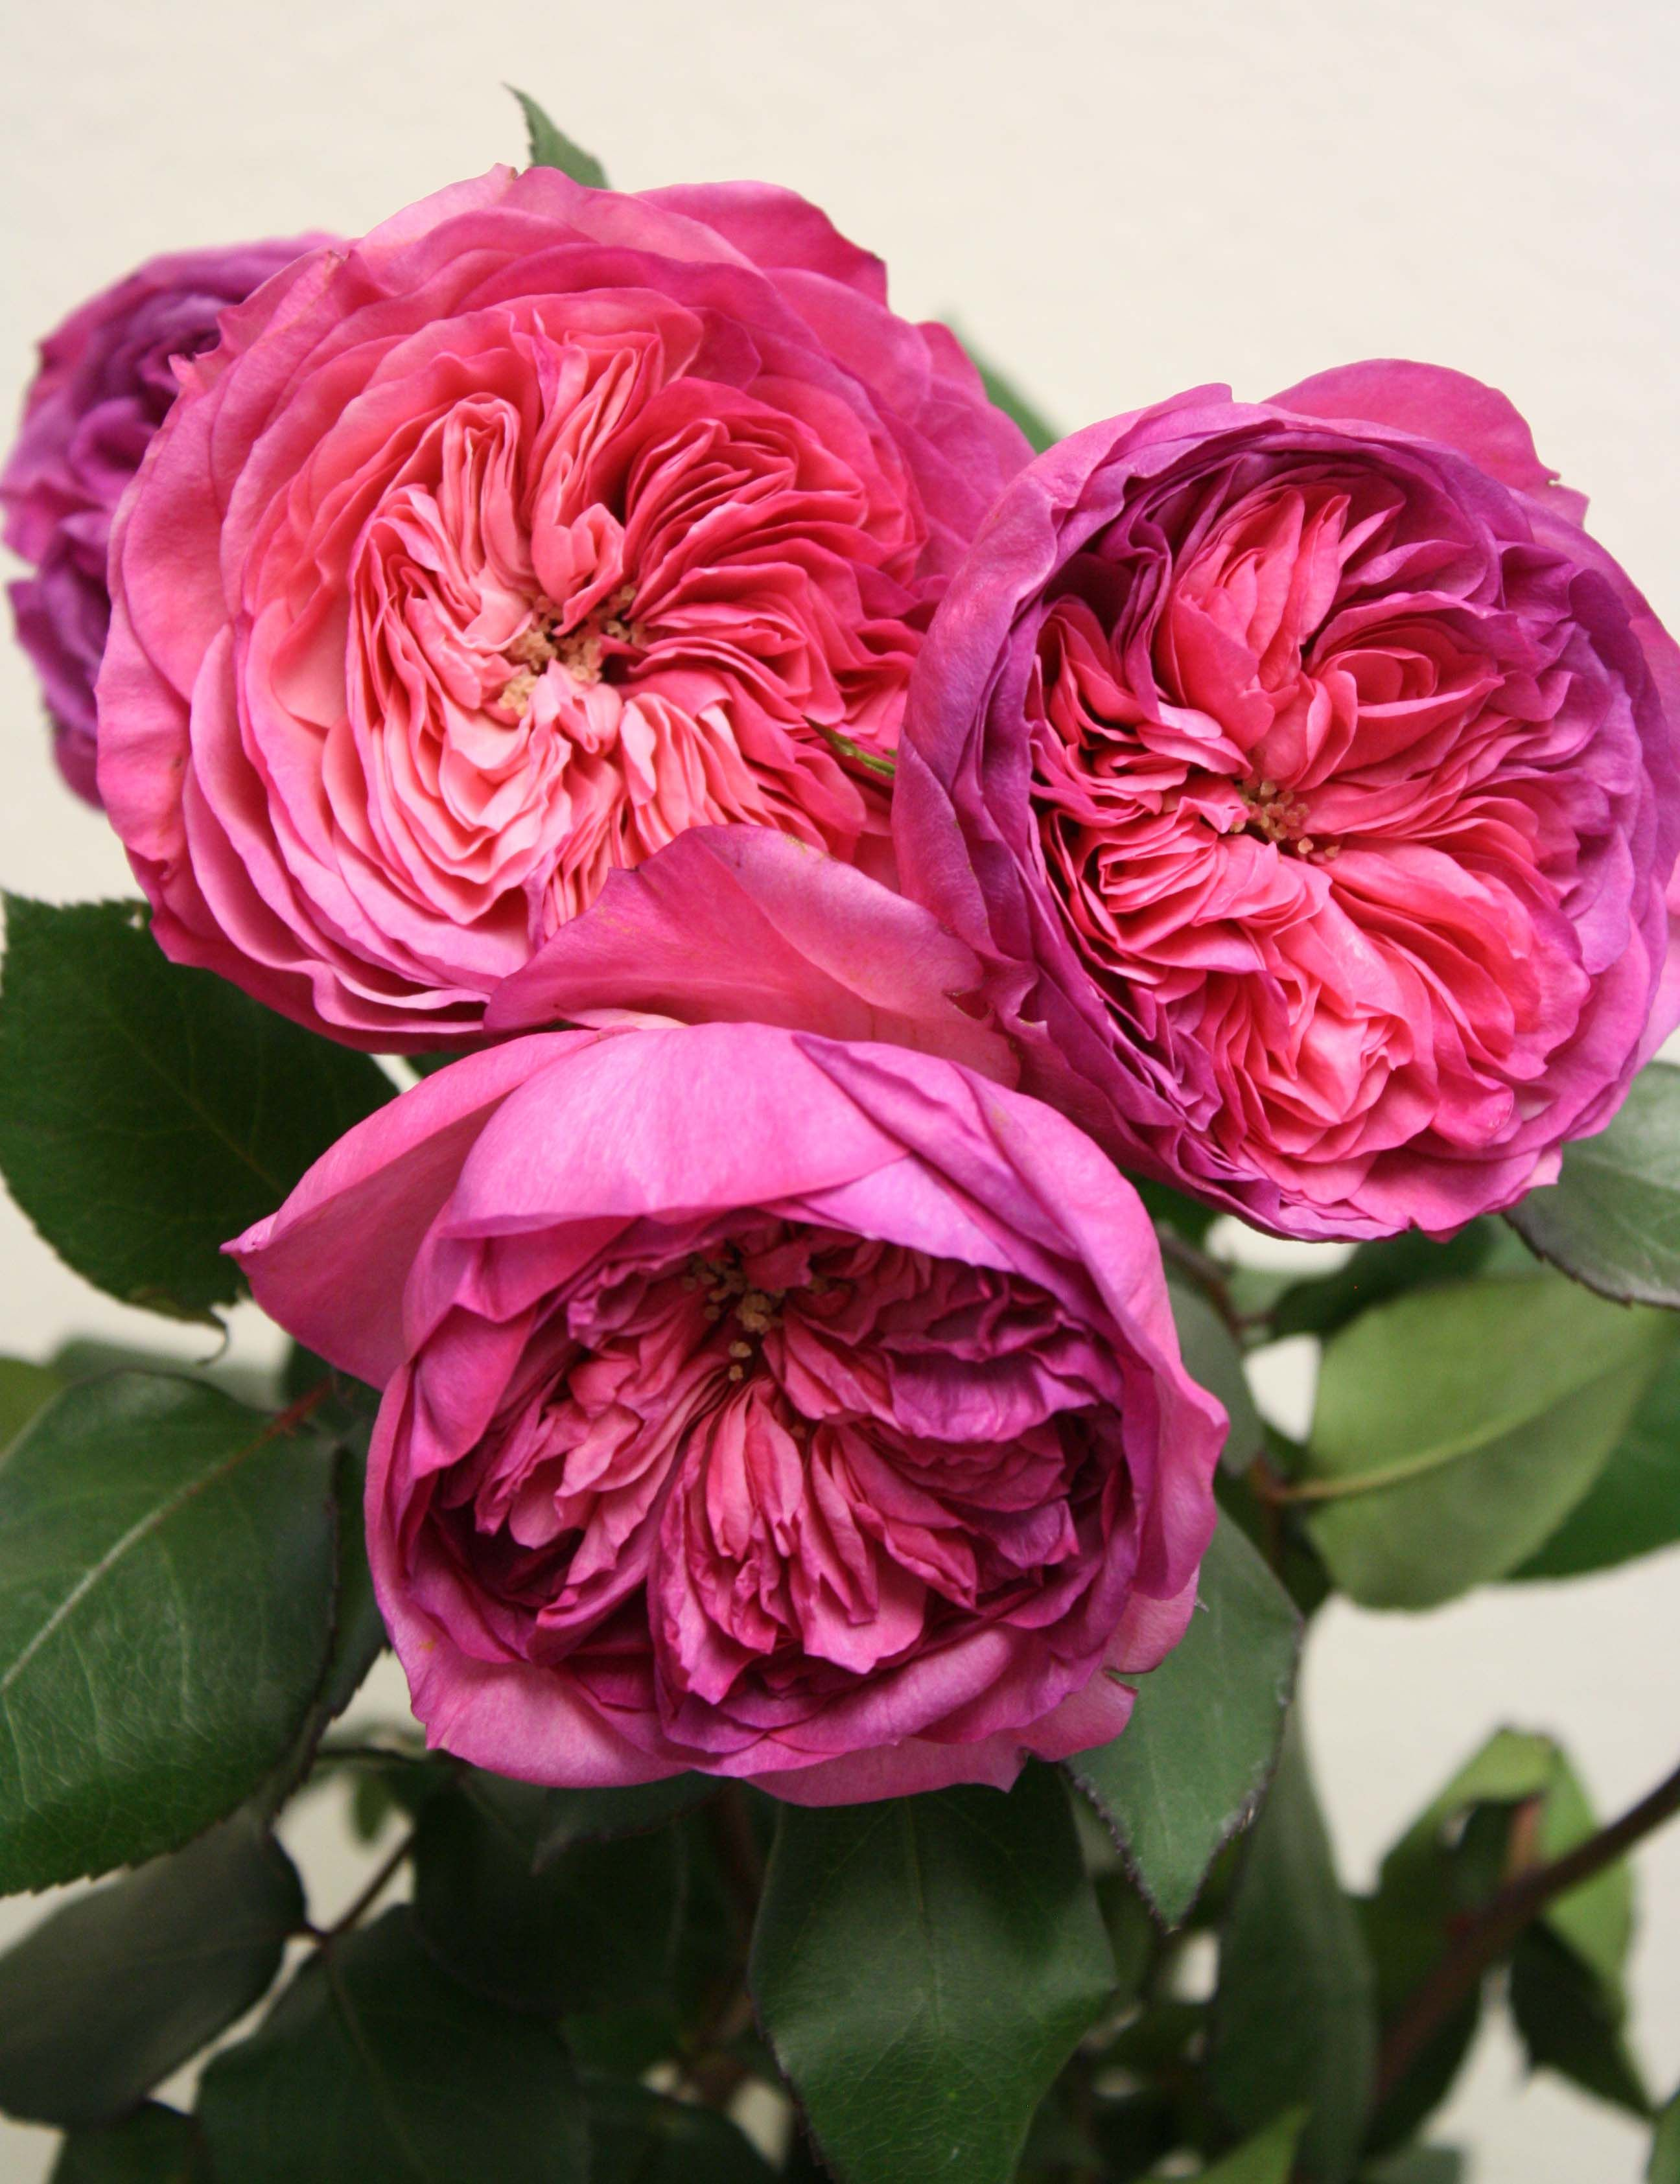 Order David Austin Roses And Other Garden Roses Onlineu2026